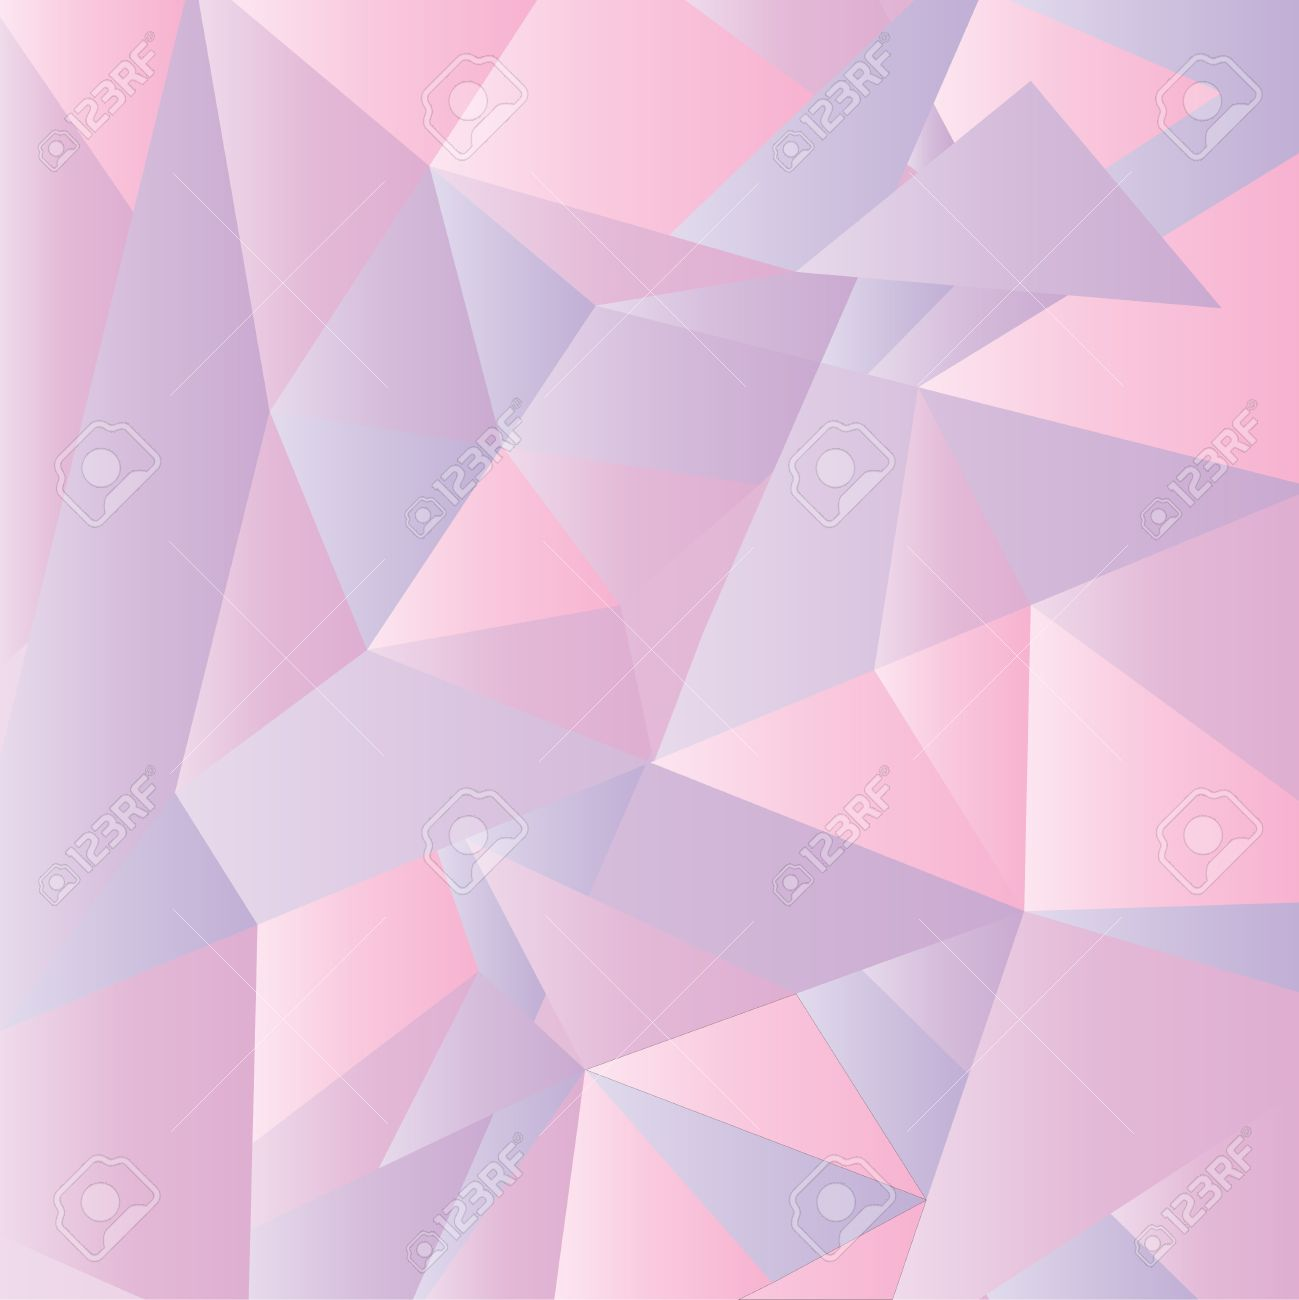 Geometric Wallpaper In Pink Shade